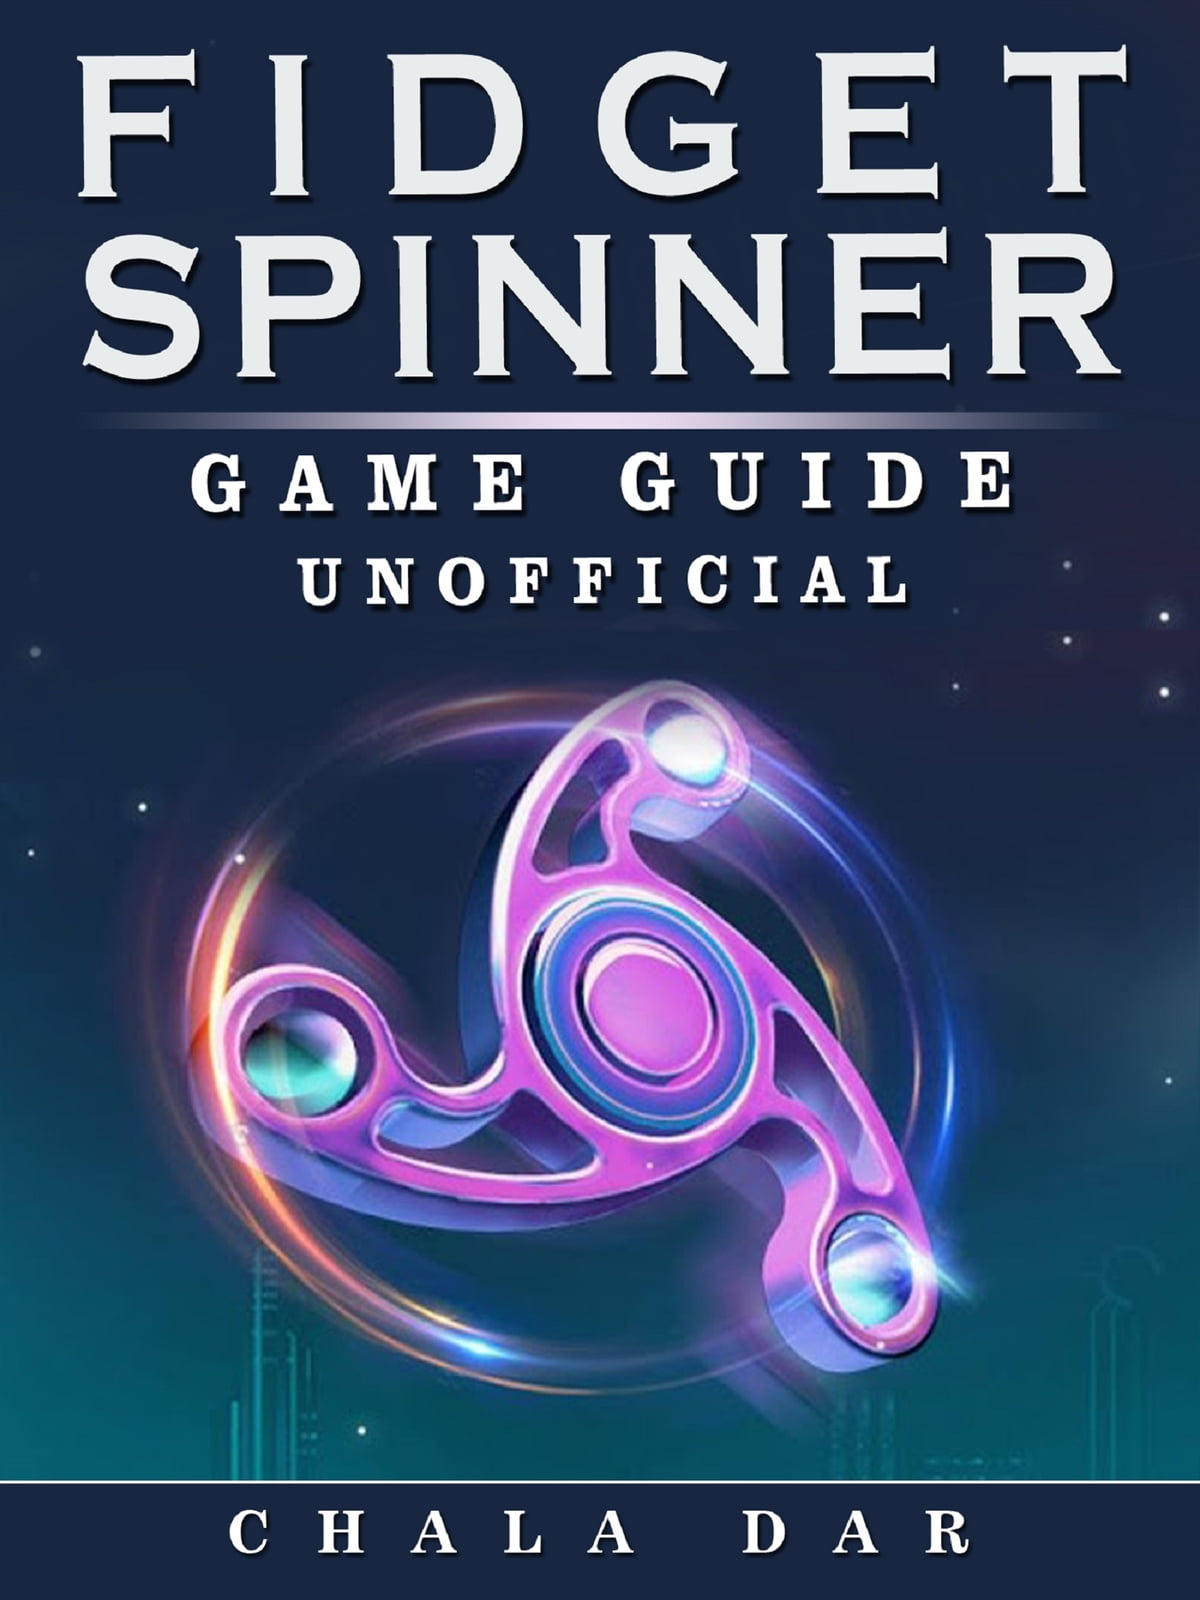 fidget spinner game guide unofficial ebook by chala dar